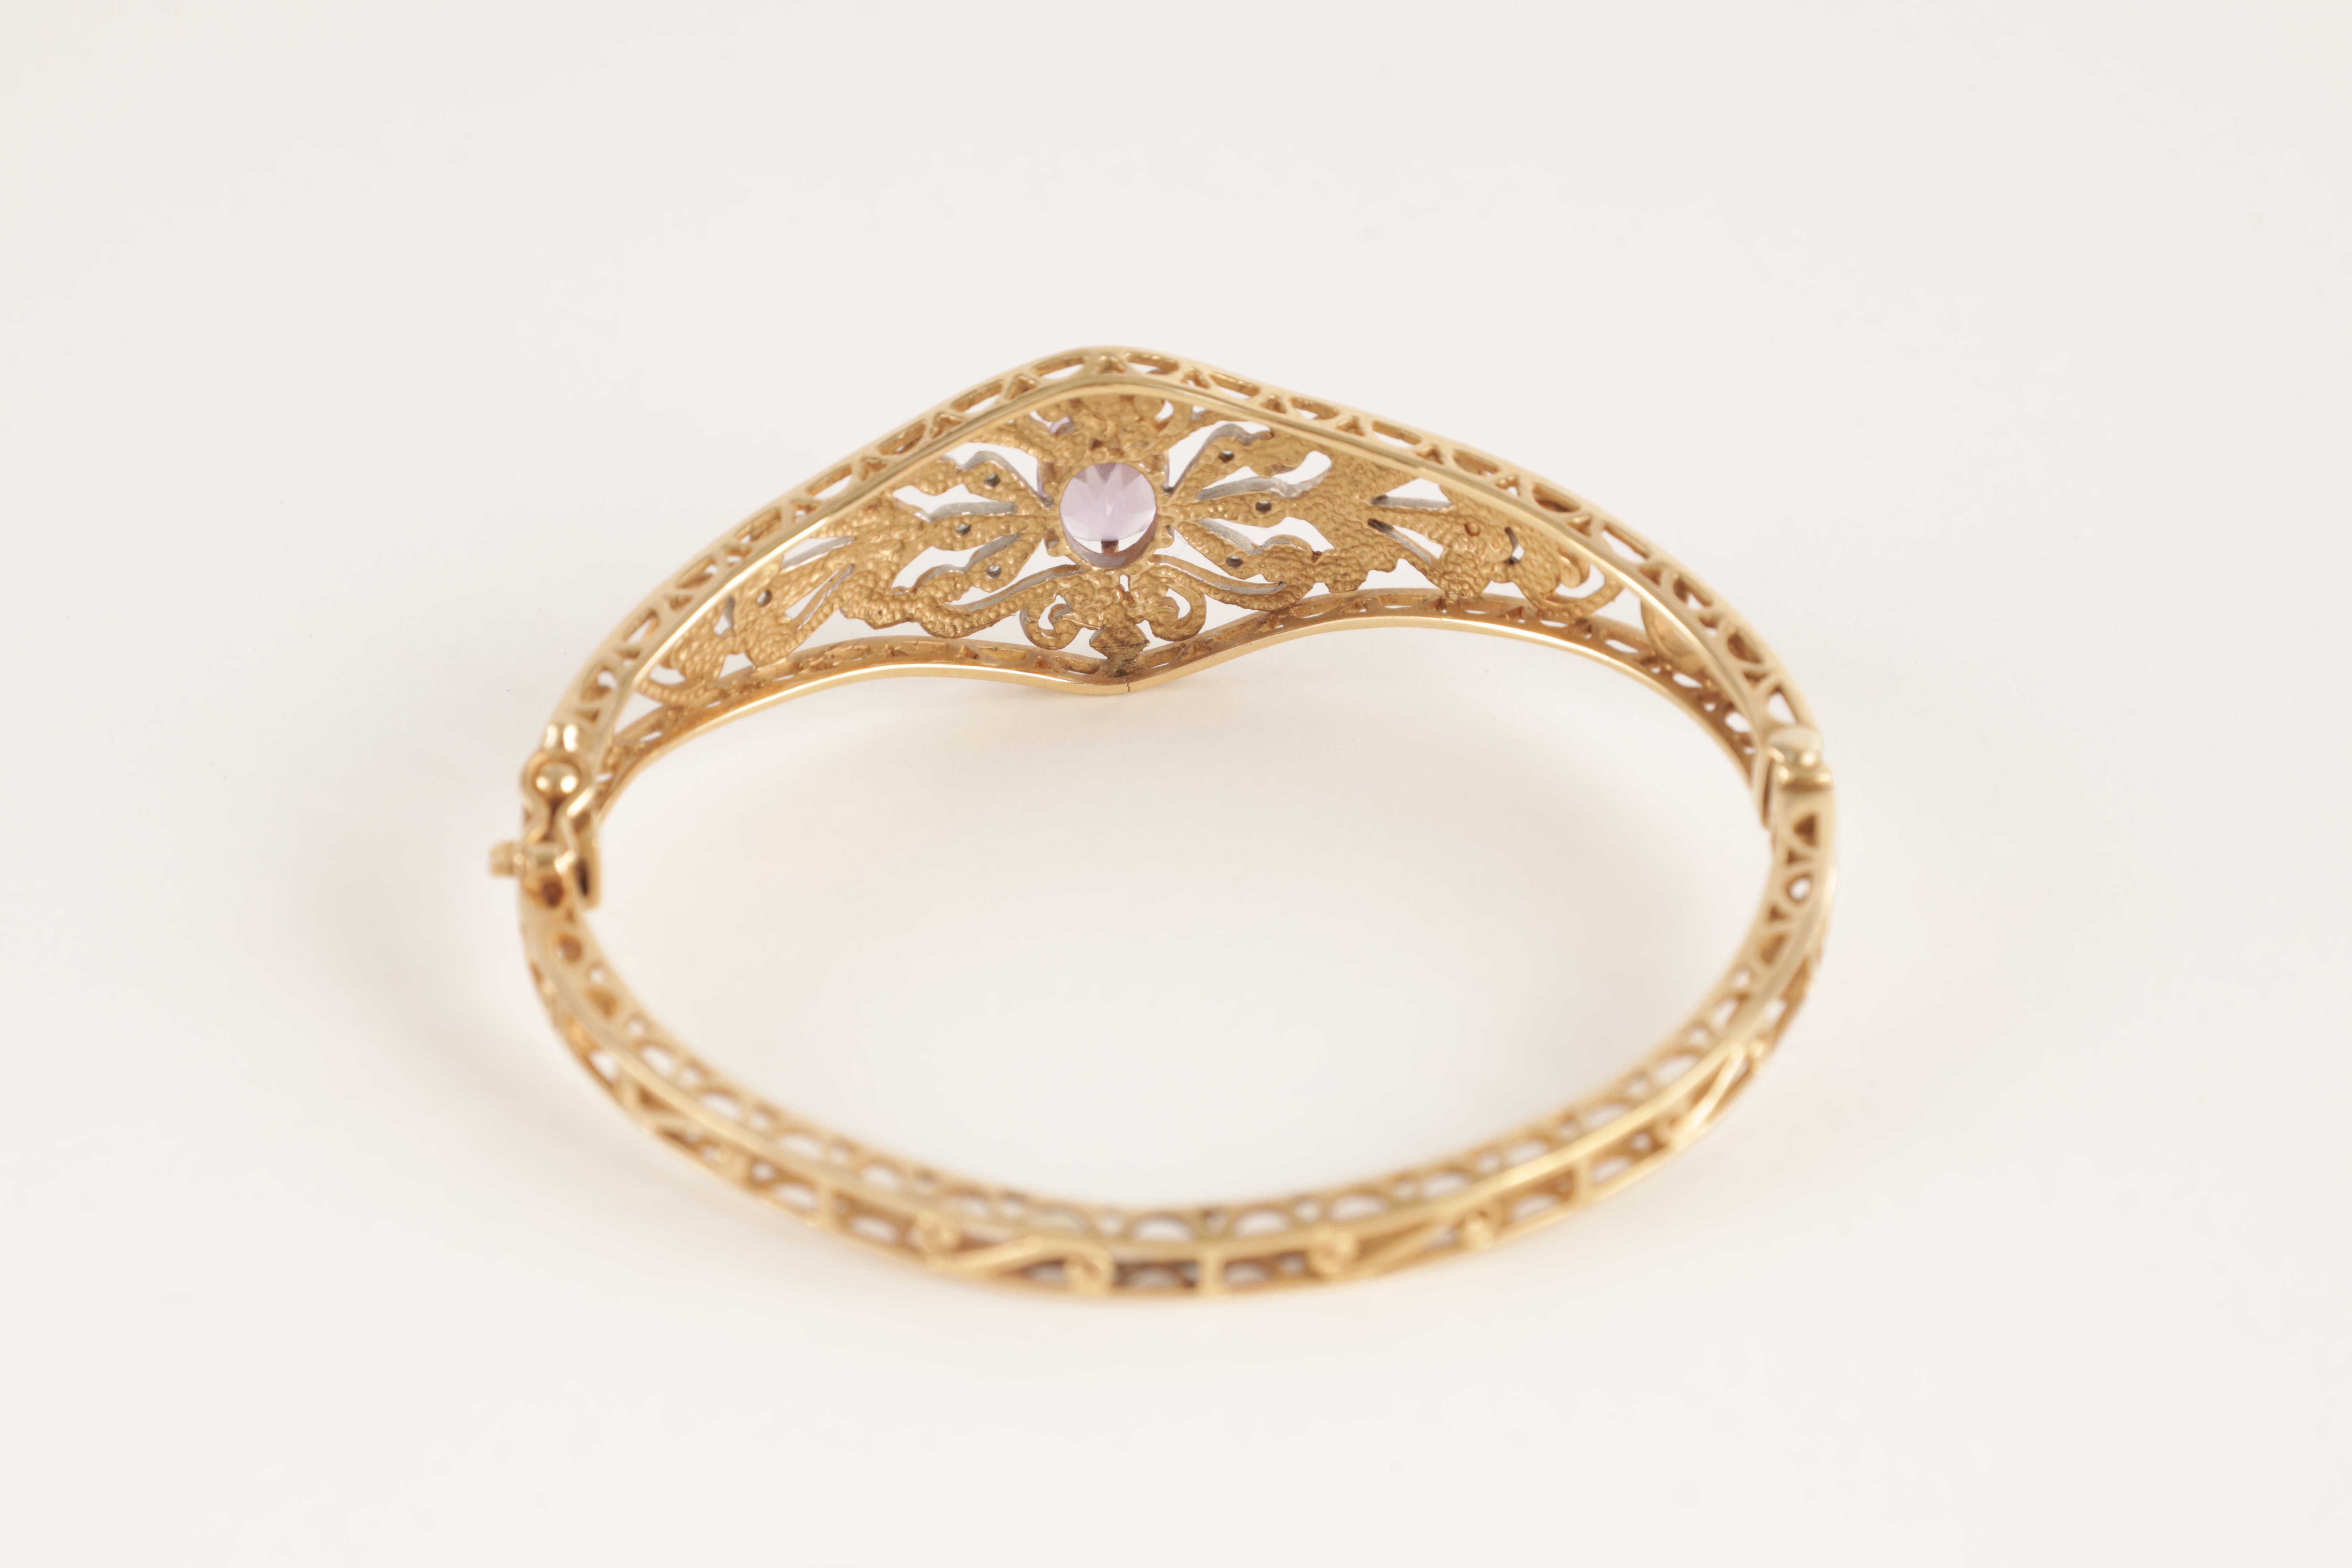 A LADIES 9CT GOLD DIAMOND AND AMETHYST BANGLE having filigree scrollwork decoration with diamonds - Image 2 of 4